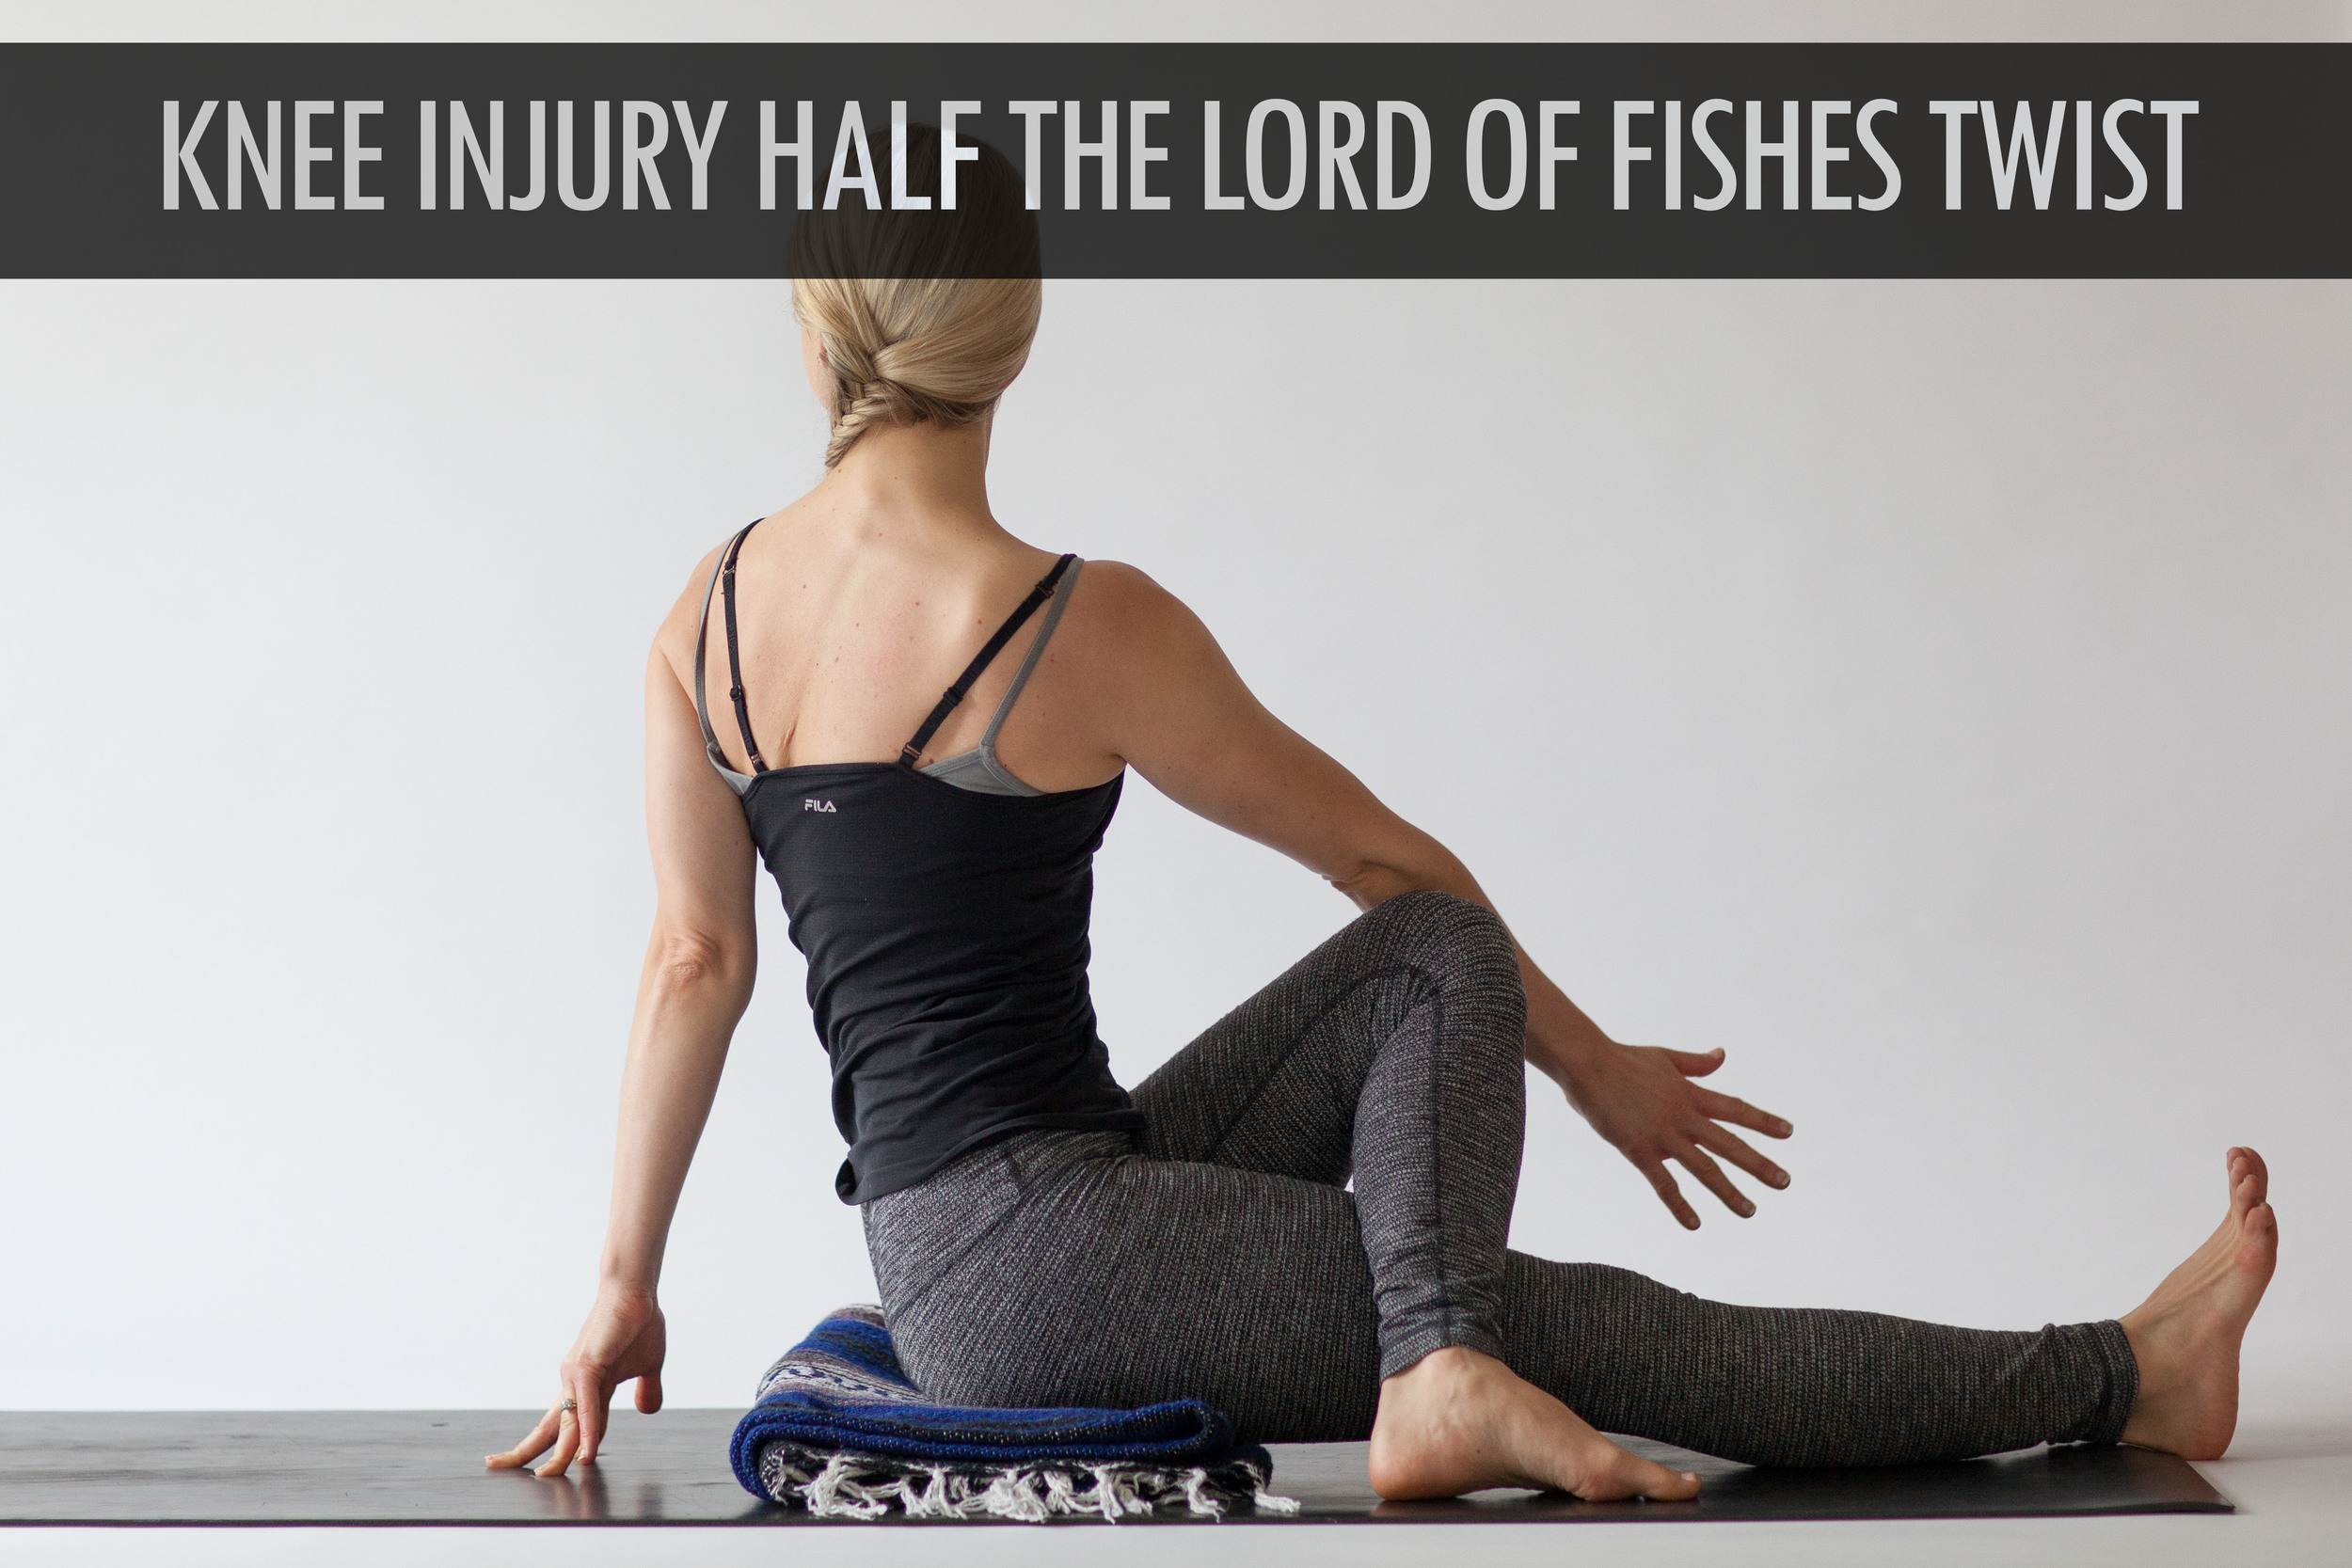 Knee Injury Half The Lord Of Fishes Twist.jpg